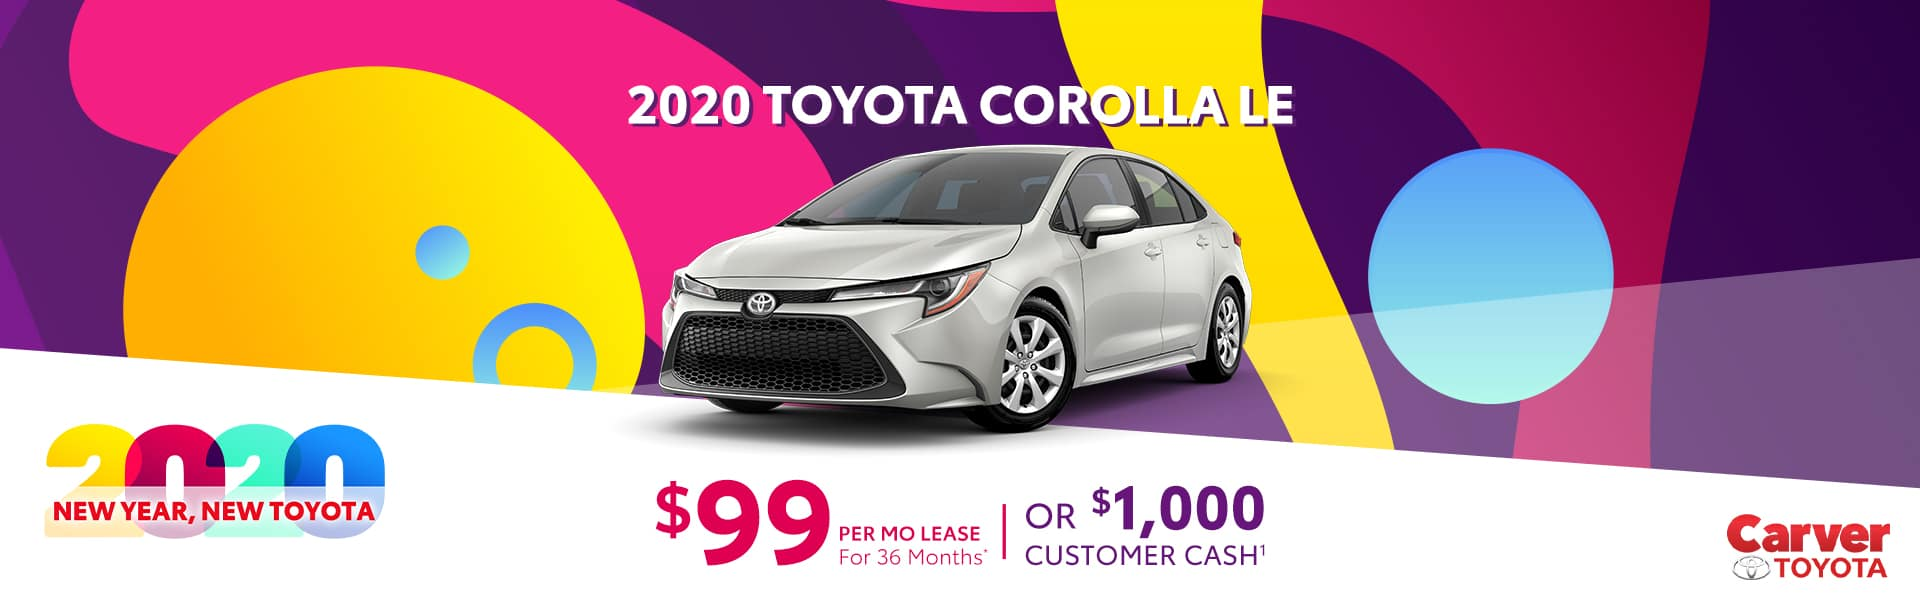 Lease a 2020 Corolla for $99 a month near Indianapolis, Indiana